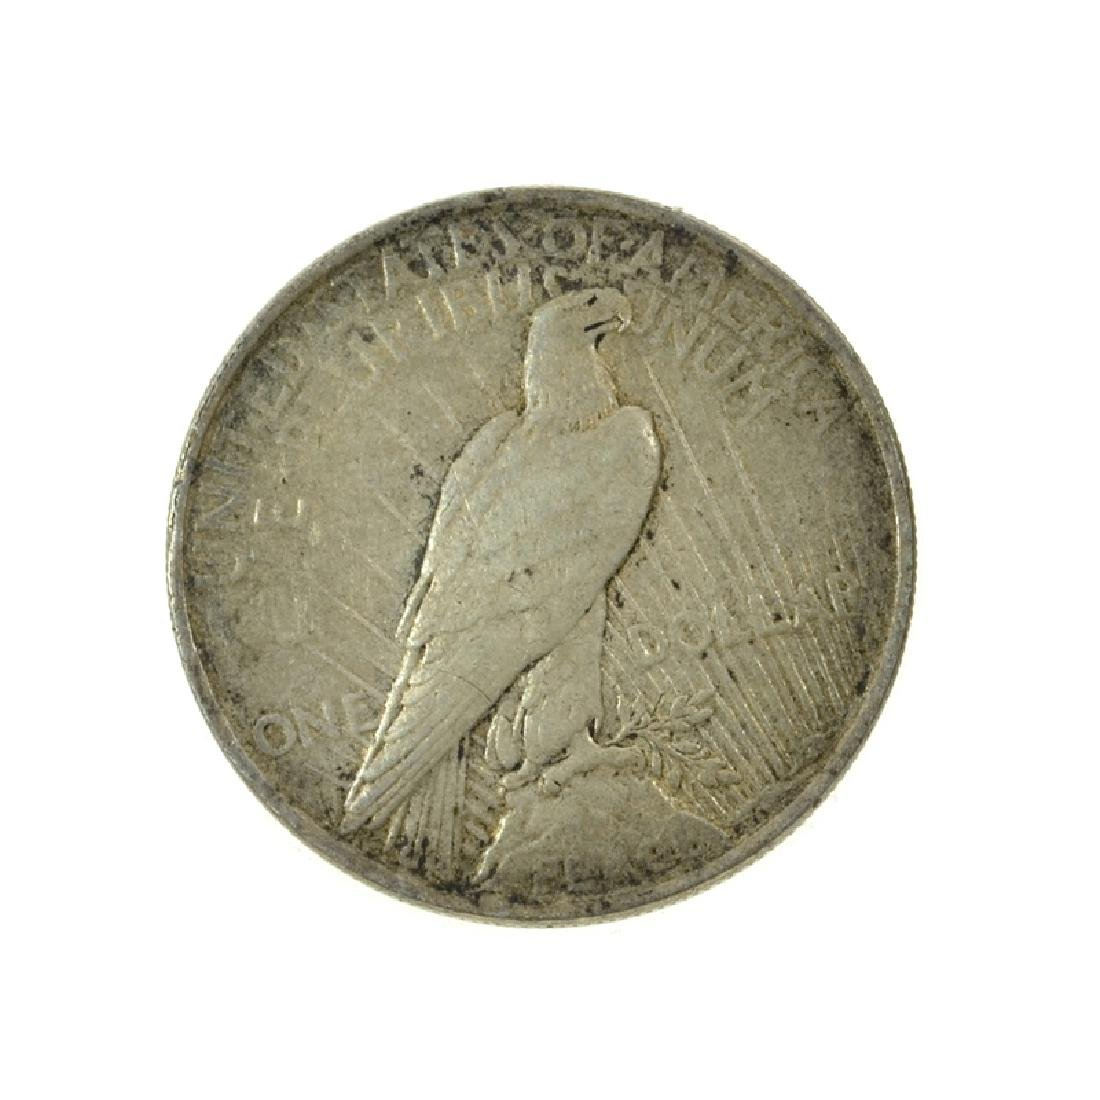 1923 Peace Silver Dollar Coin - 2